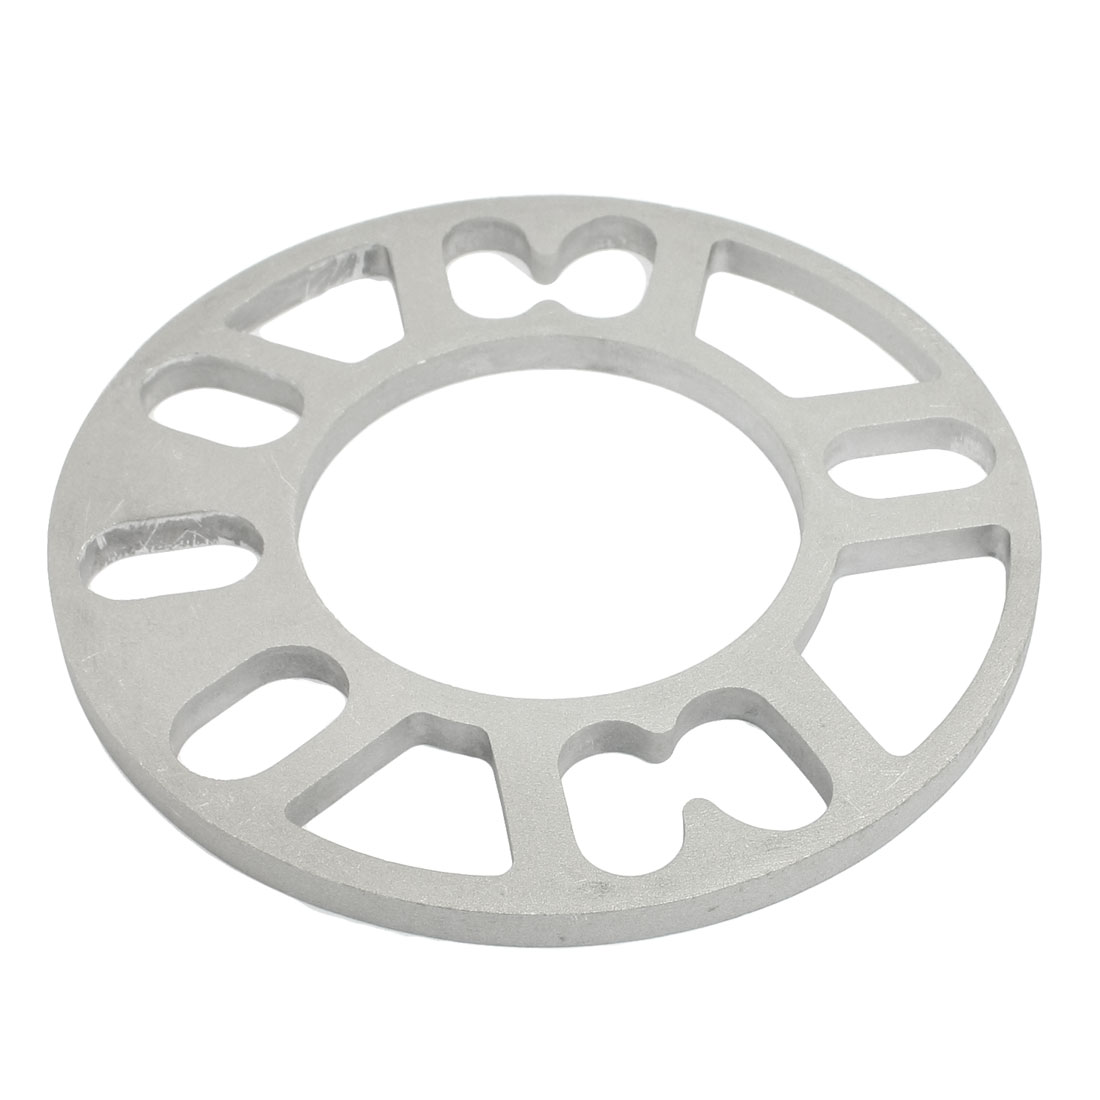 Aluminum Alloy 4 and 5 Lug 8mm Thickness Wheel Spacer Gasket